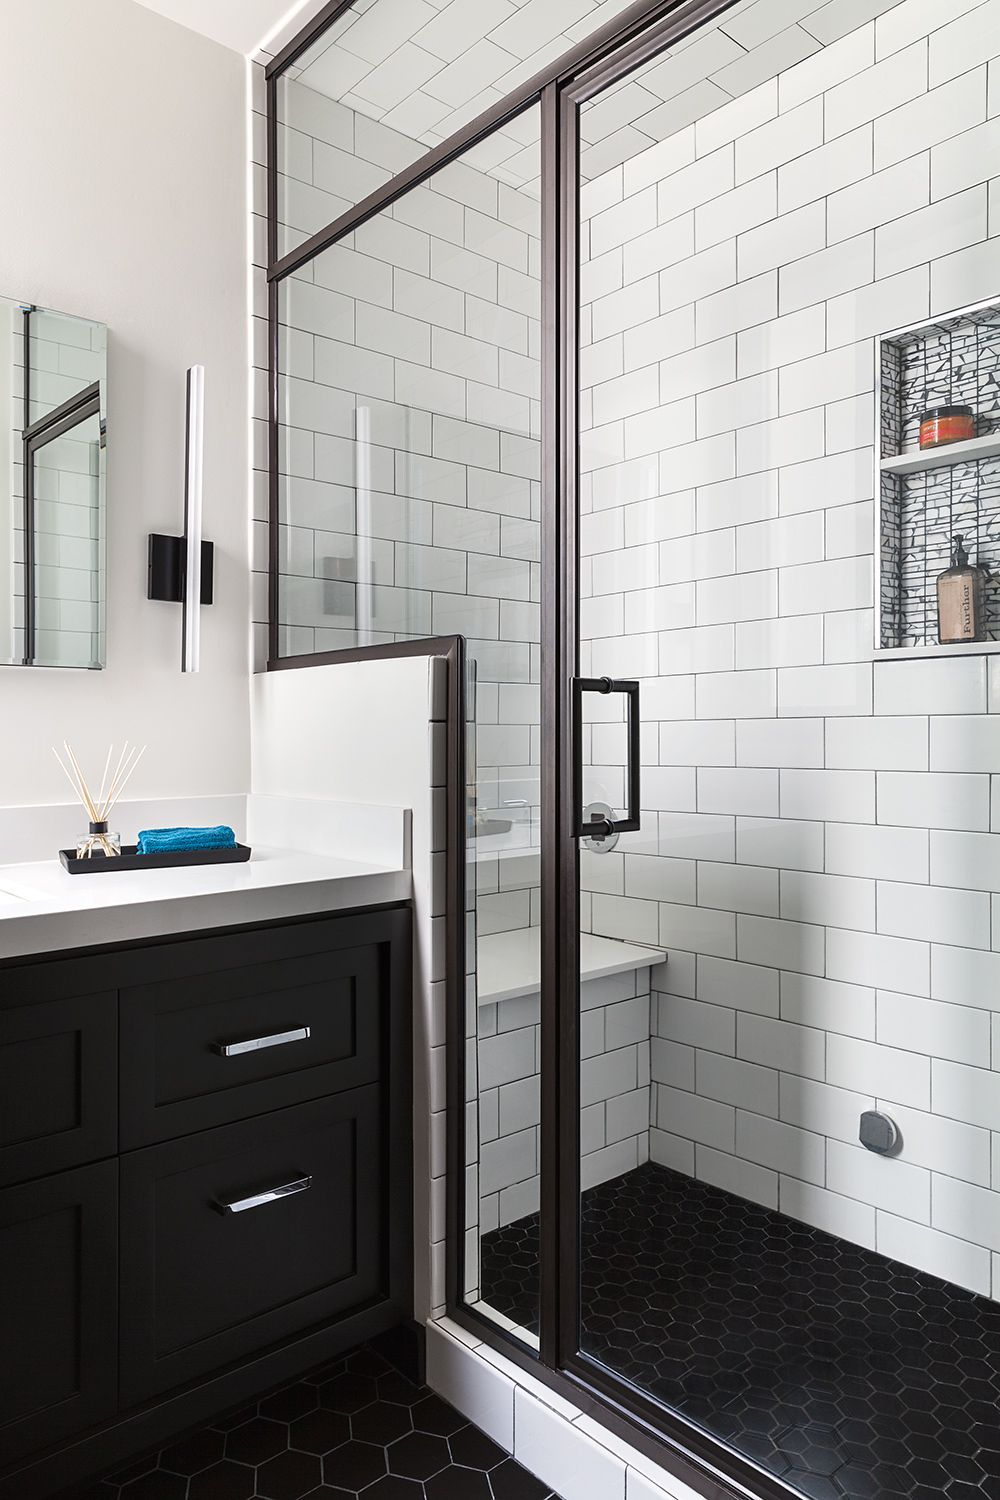 san francisco bathroom remodel steam shower black hex floor tiles white subway tiles